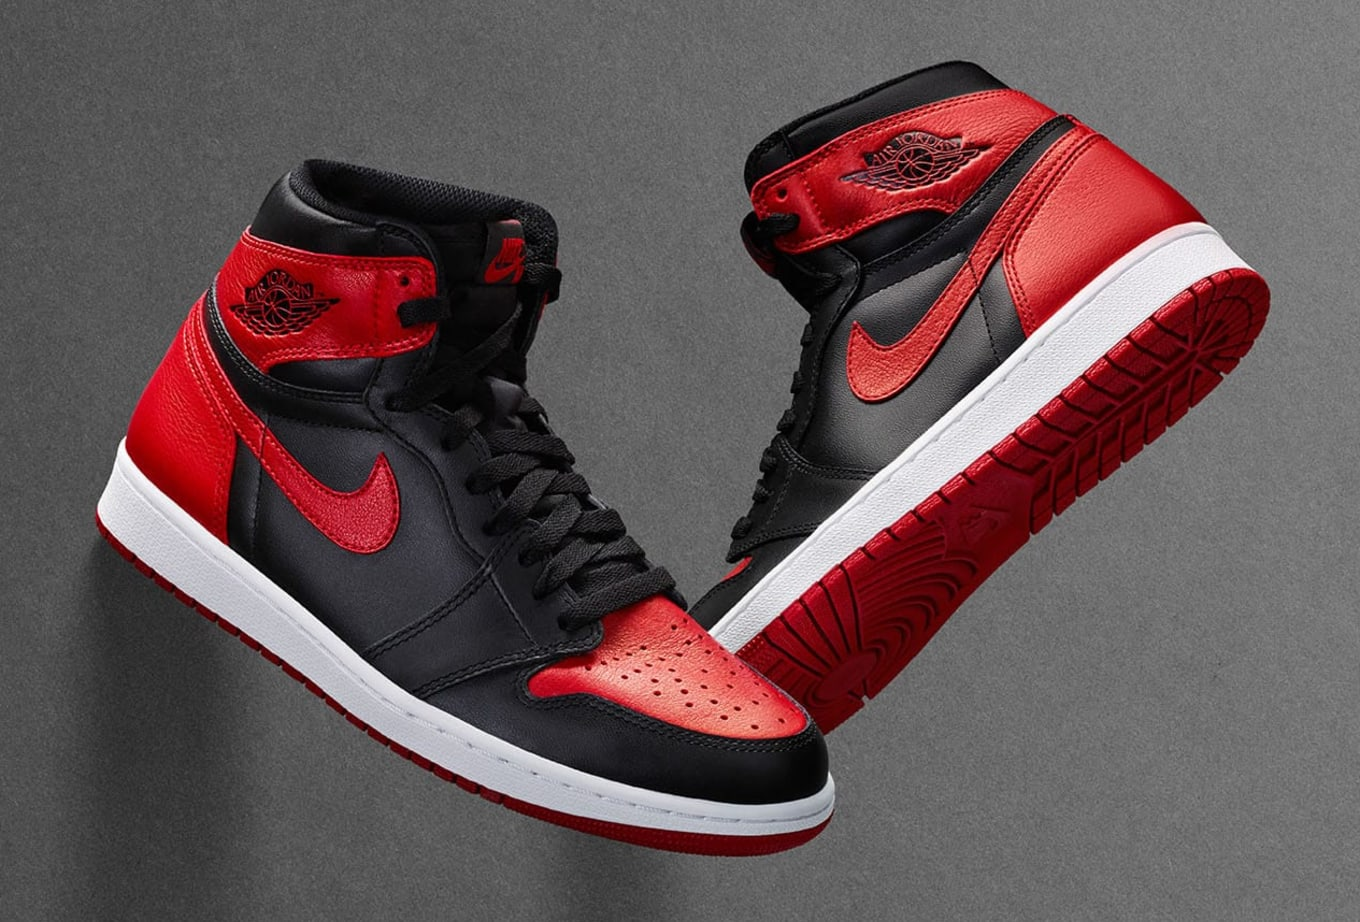 uk availability d0e8a 217bb Air Jordan 1 (I) High